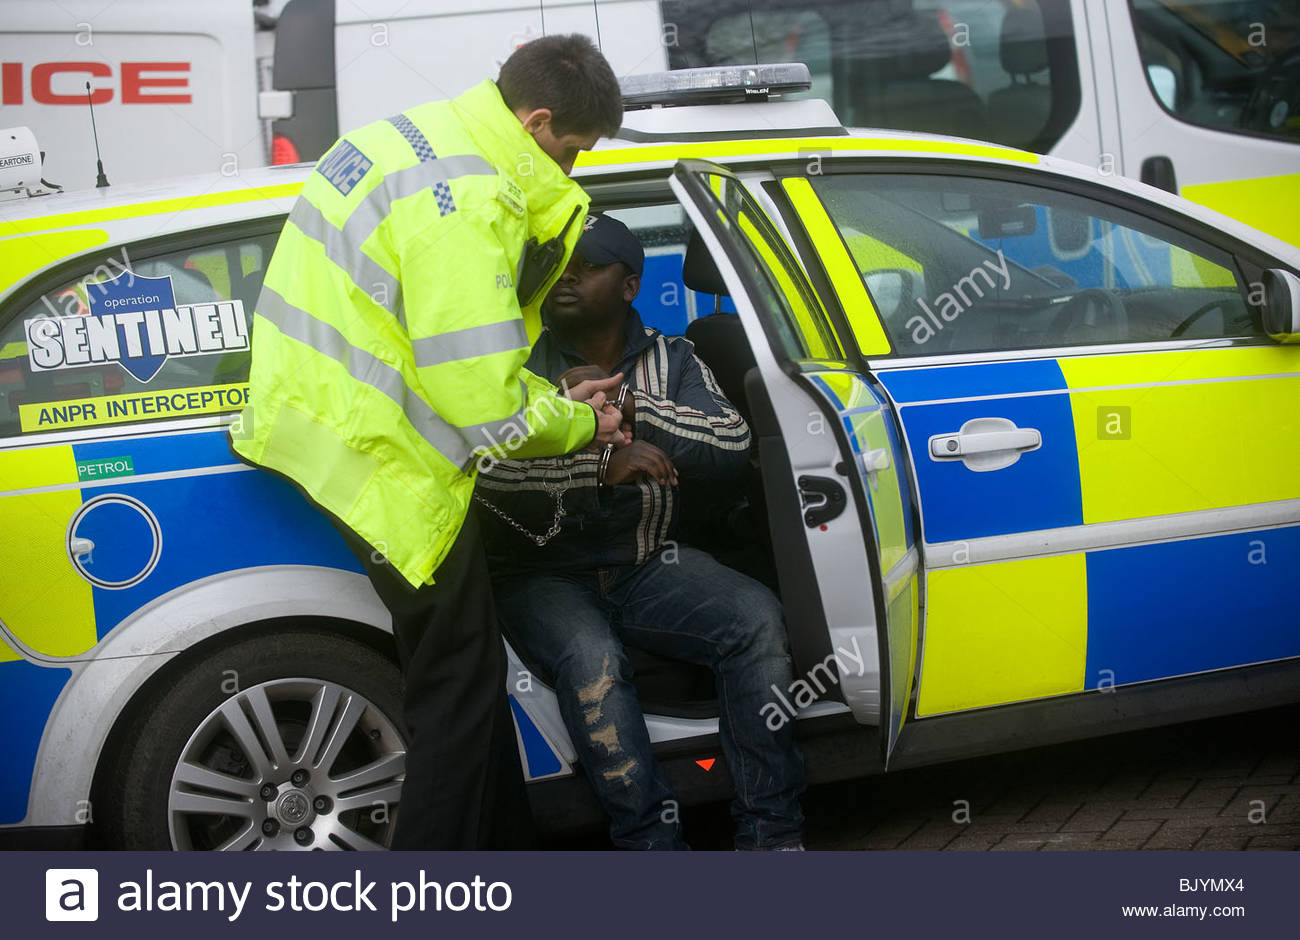 police arresting a male of African appearance - Stock Image